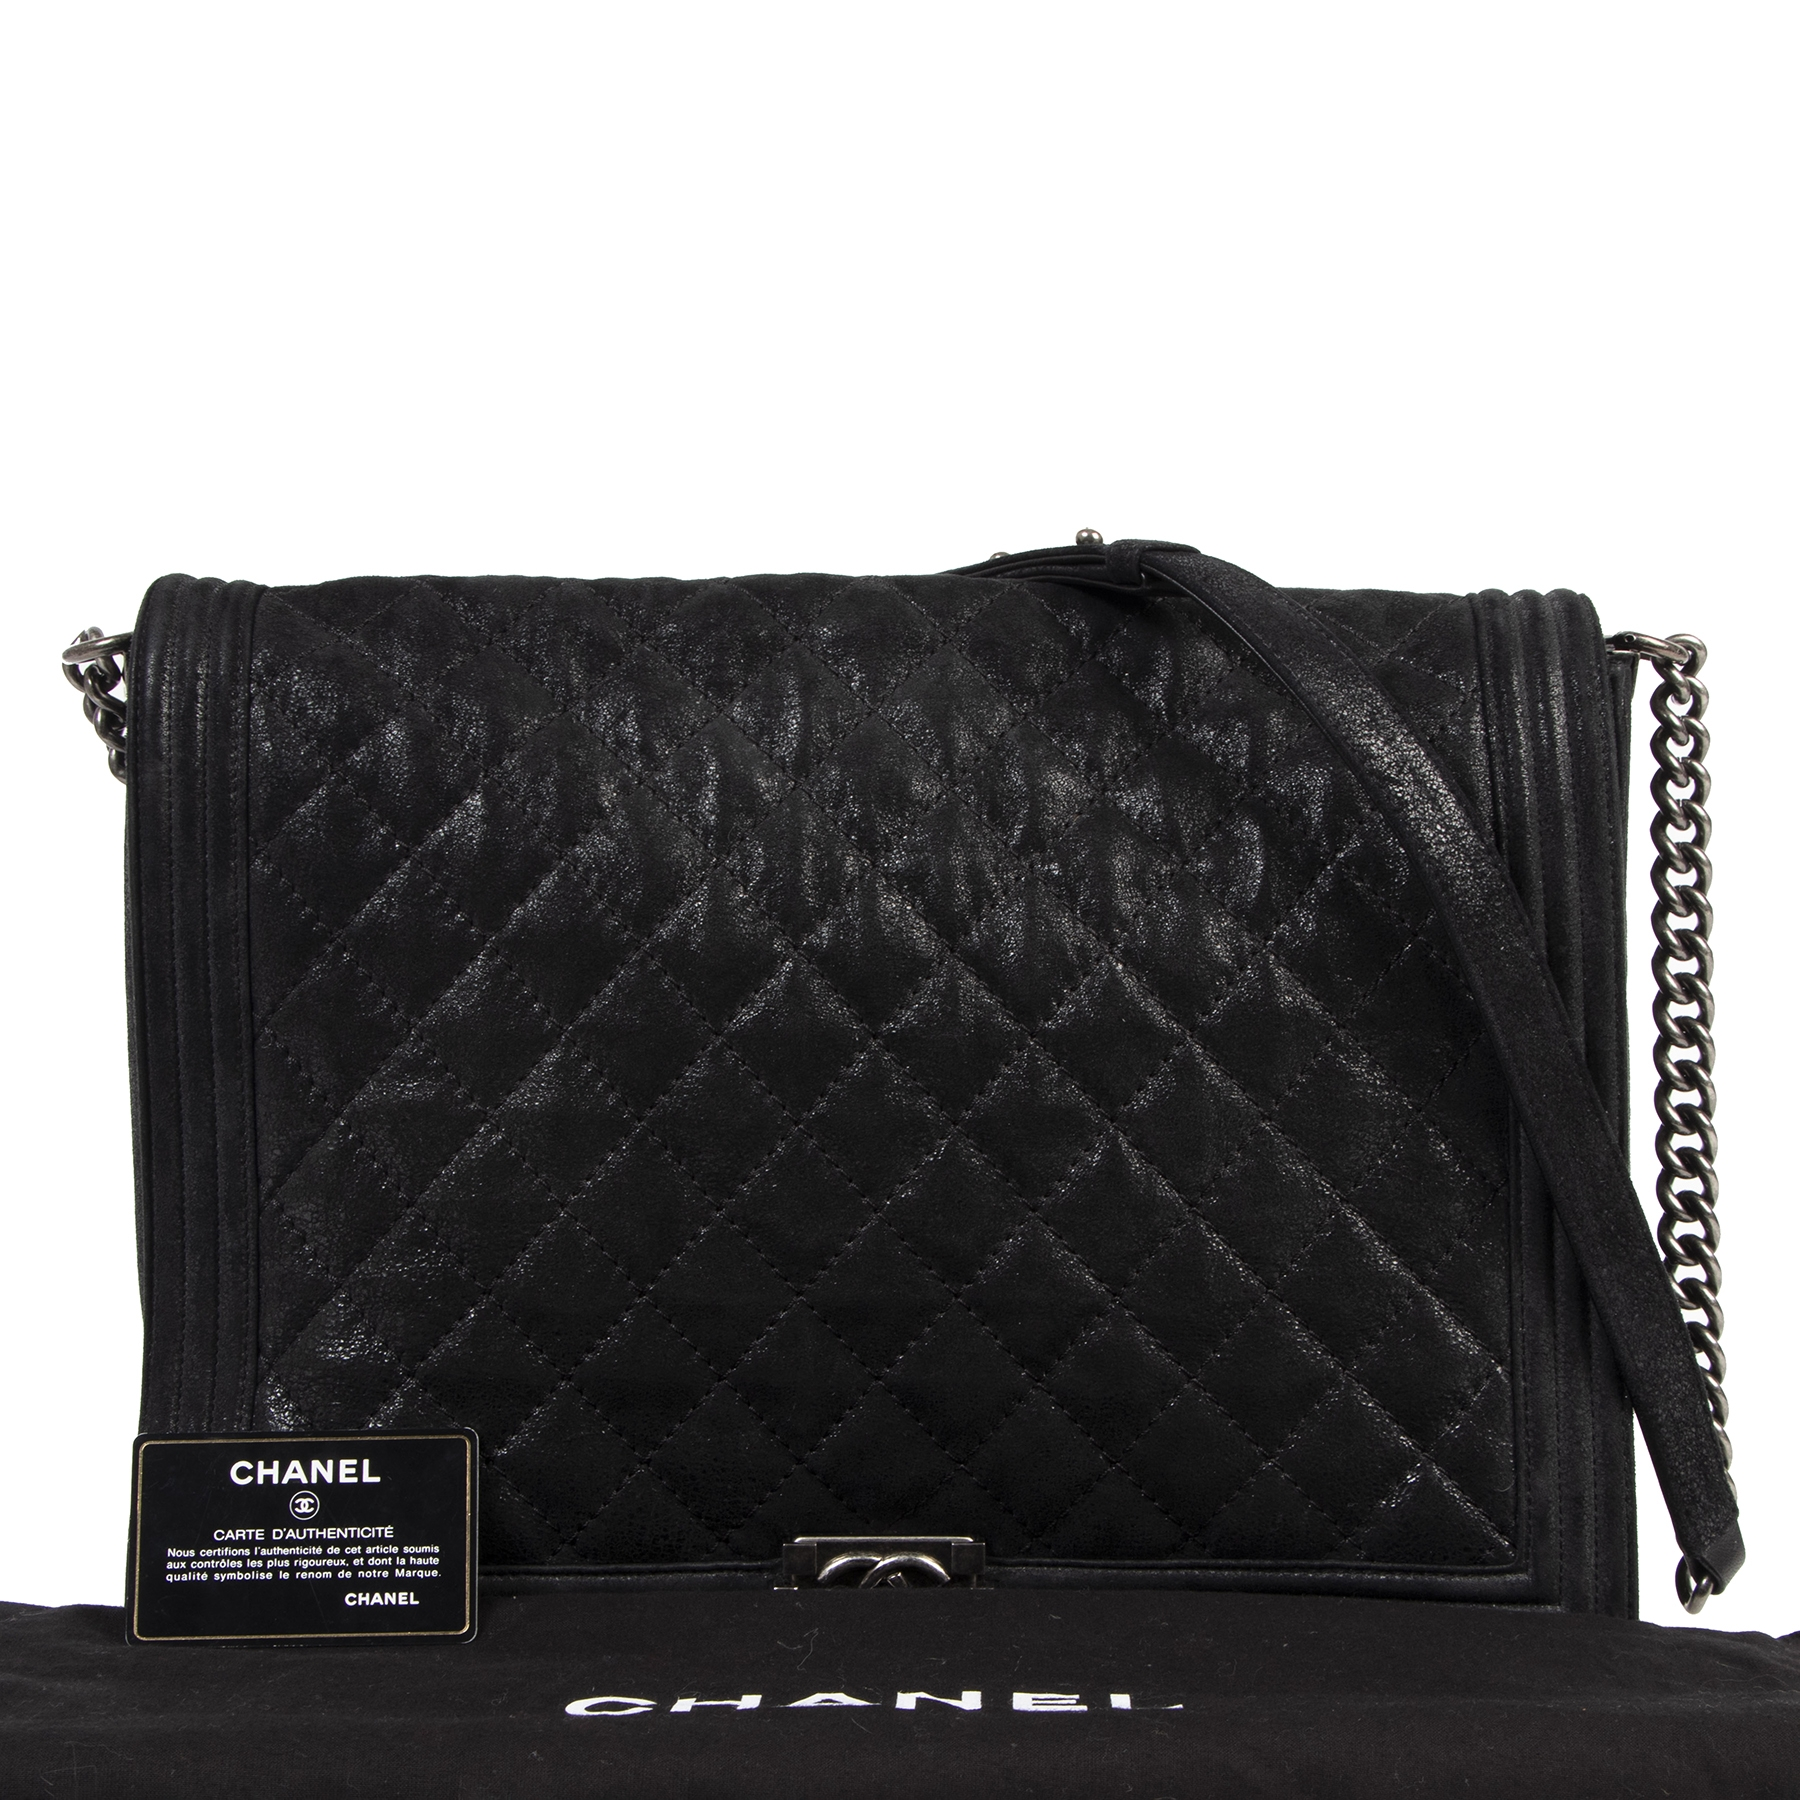 We buy and sell your authentic preloved designer items online Chanel Boy Flap Gentle Quilted XL Black